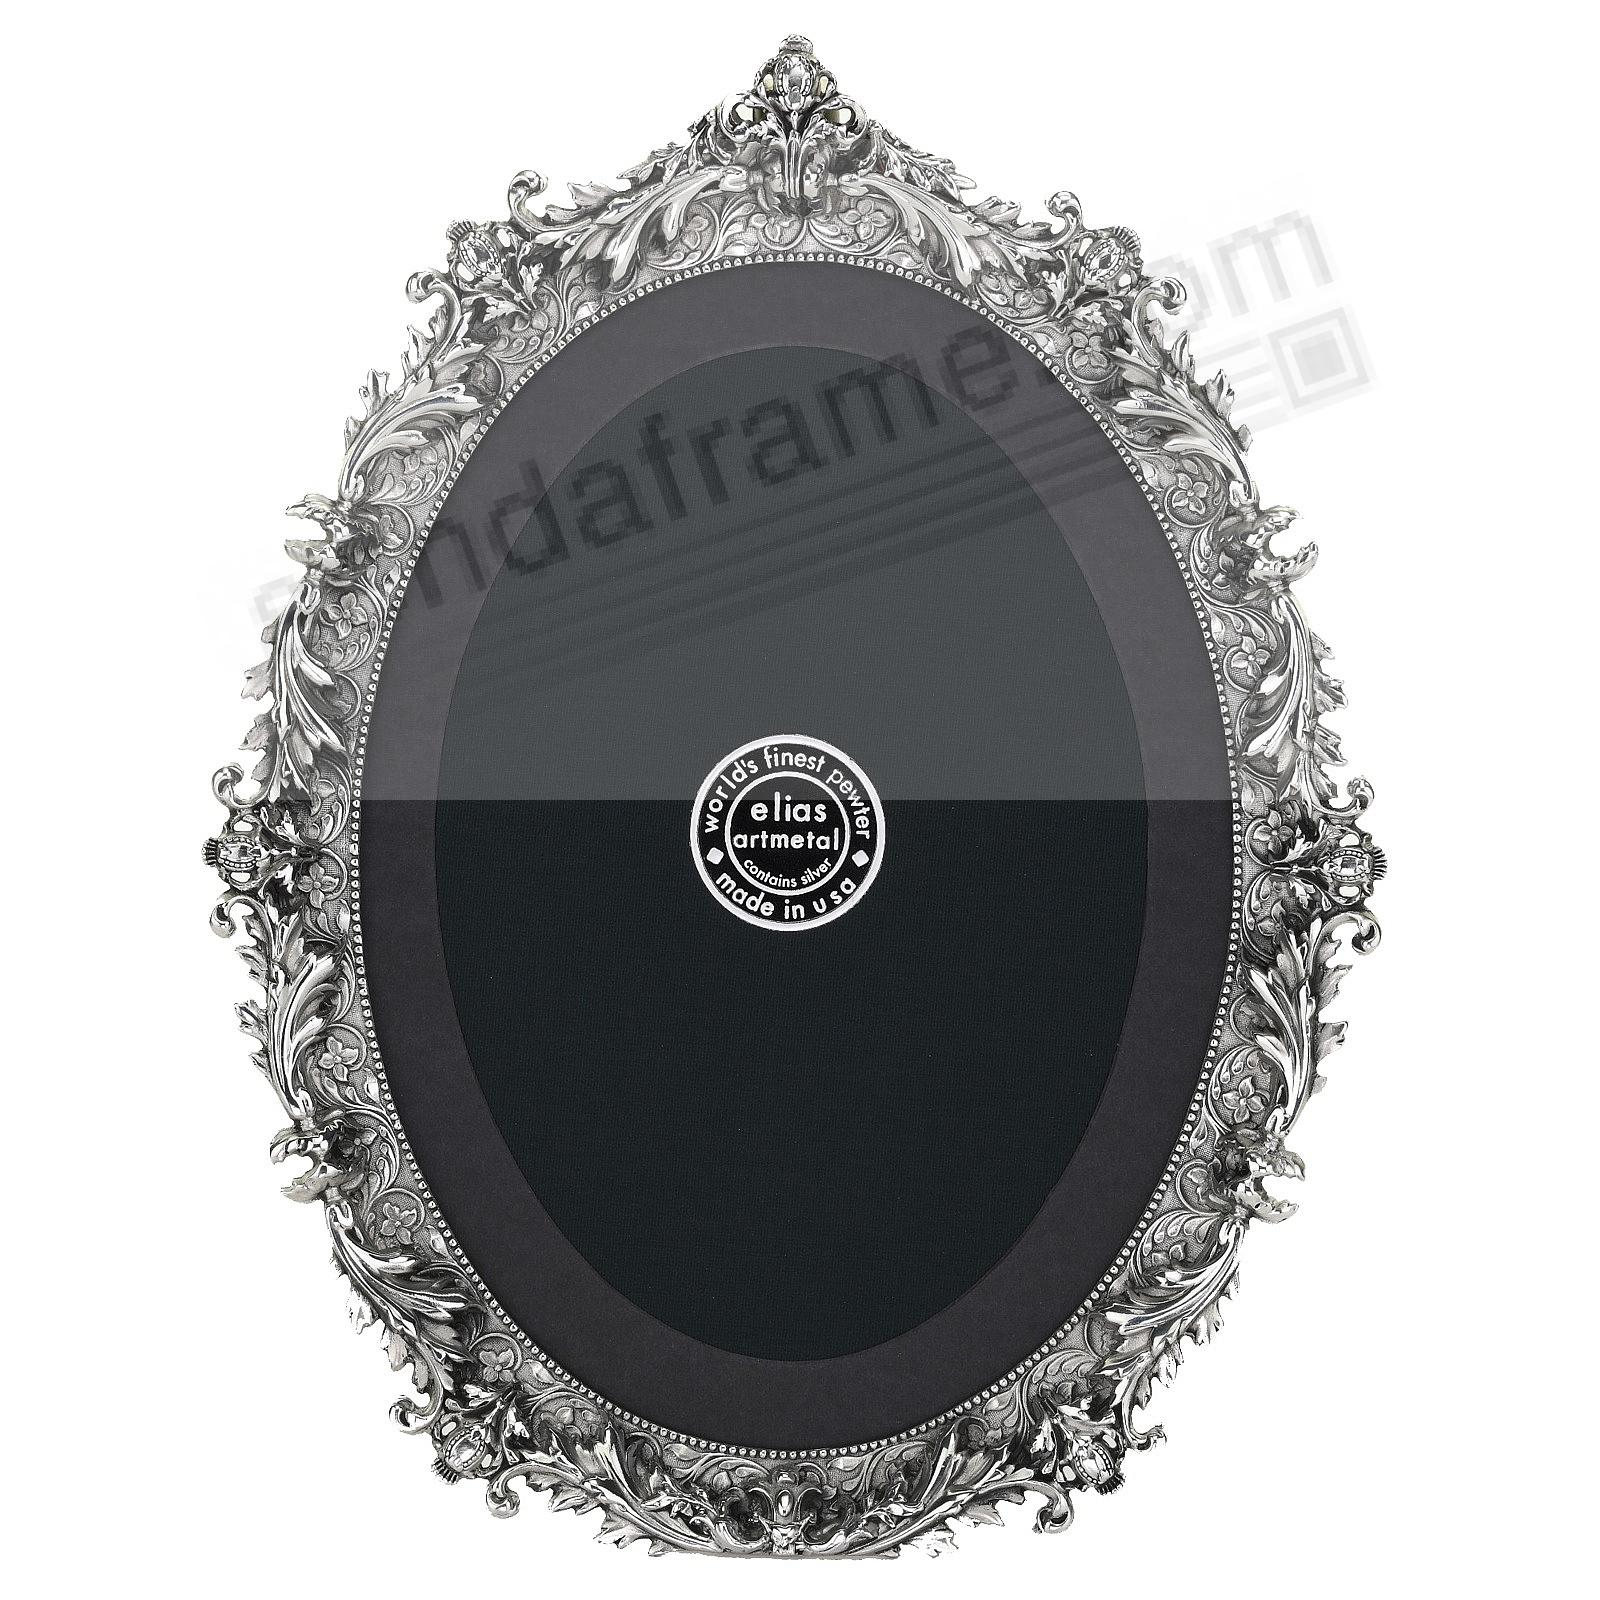 FRENCH BAROQUE OVAL Fine Silvered Pewter 5x7 frame by Elias Artmetal®